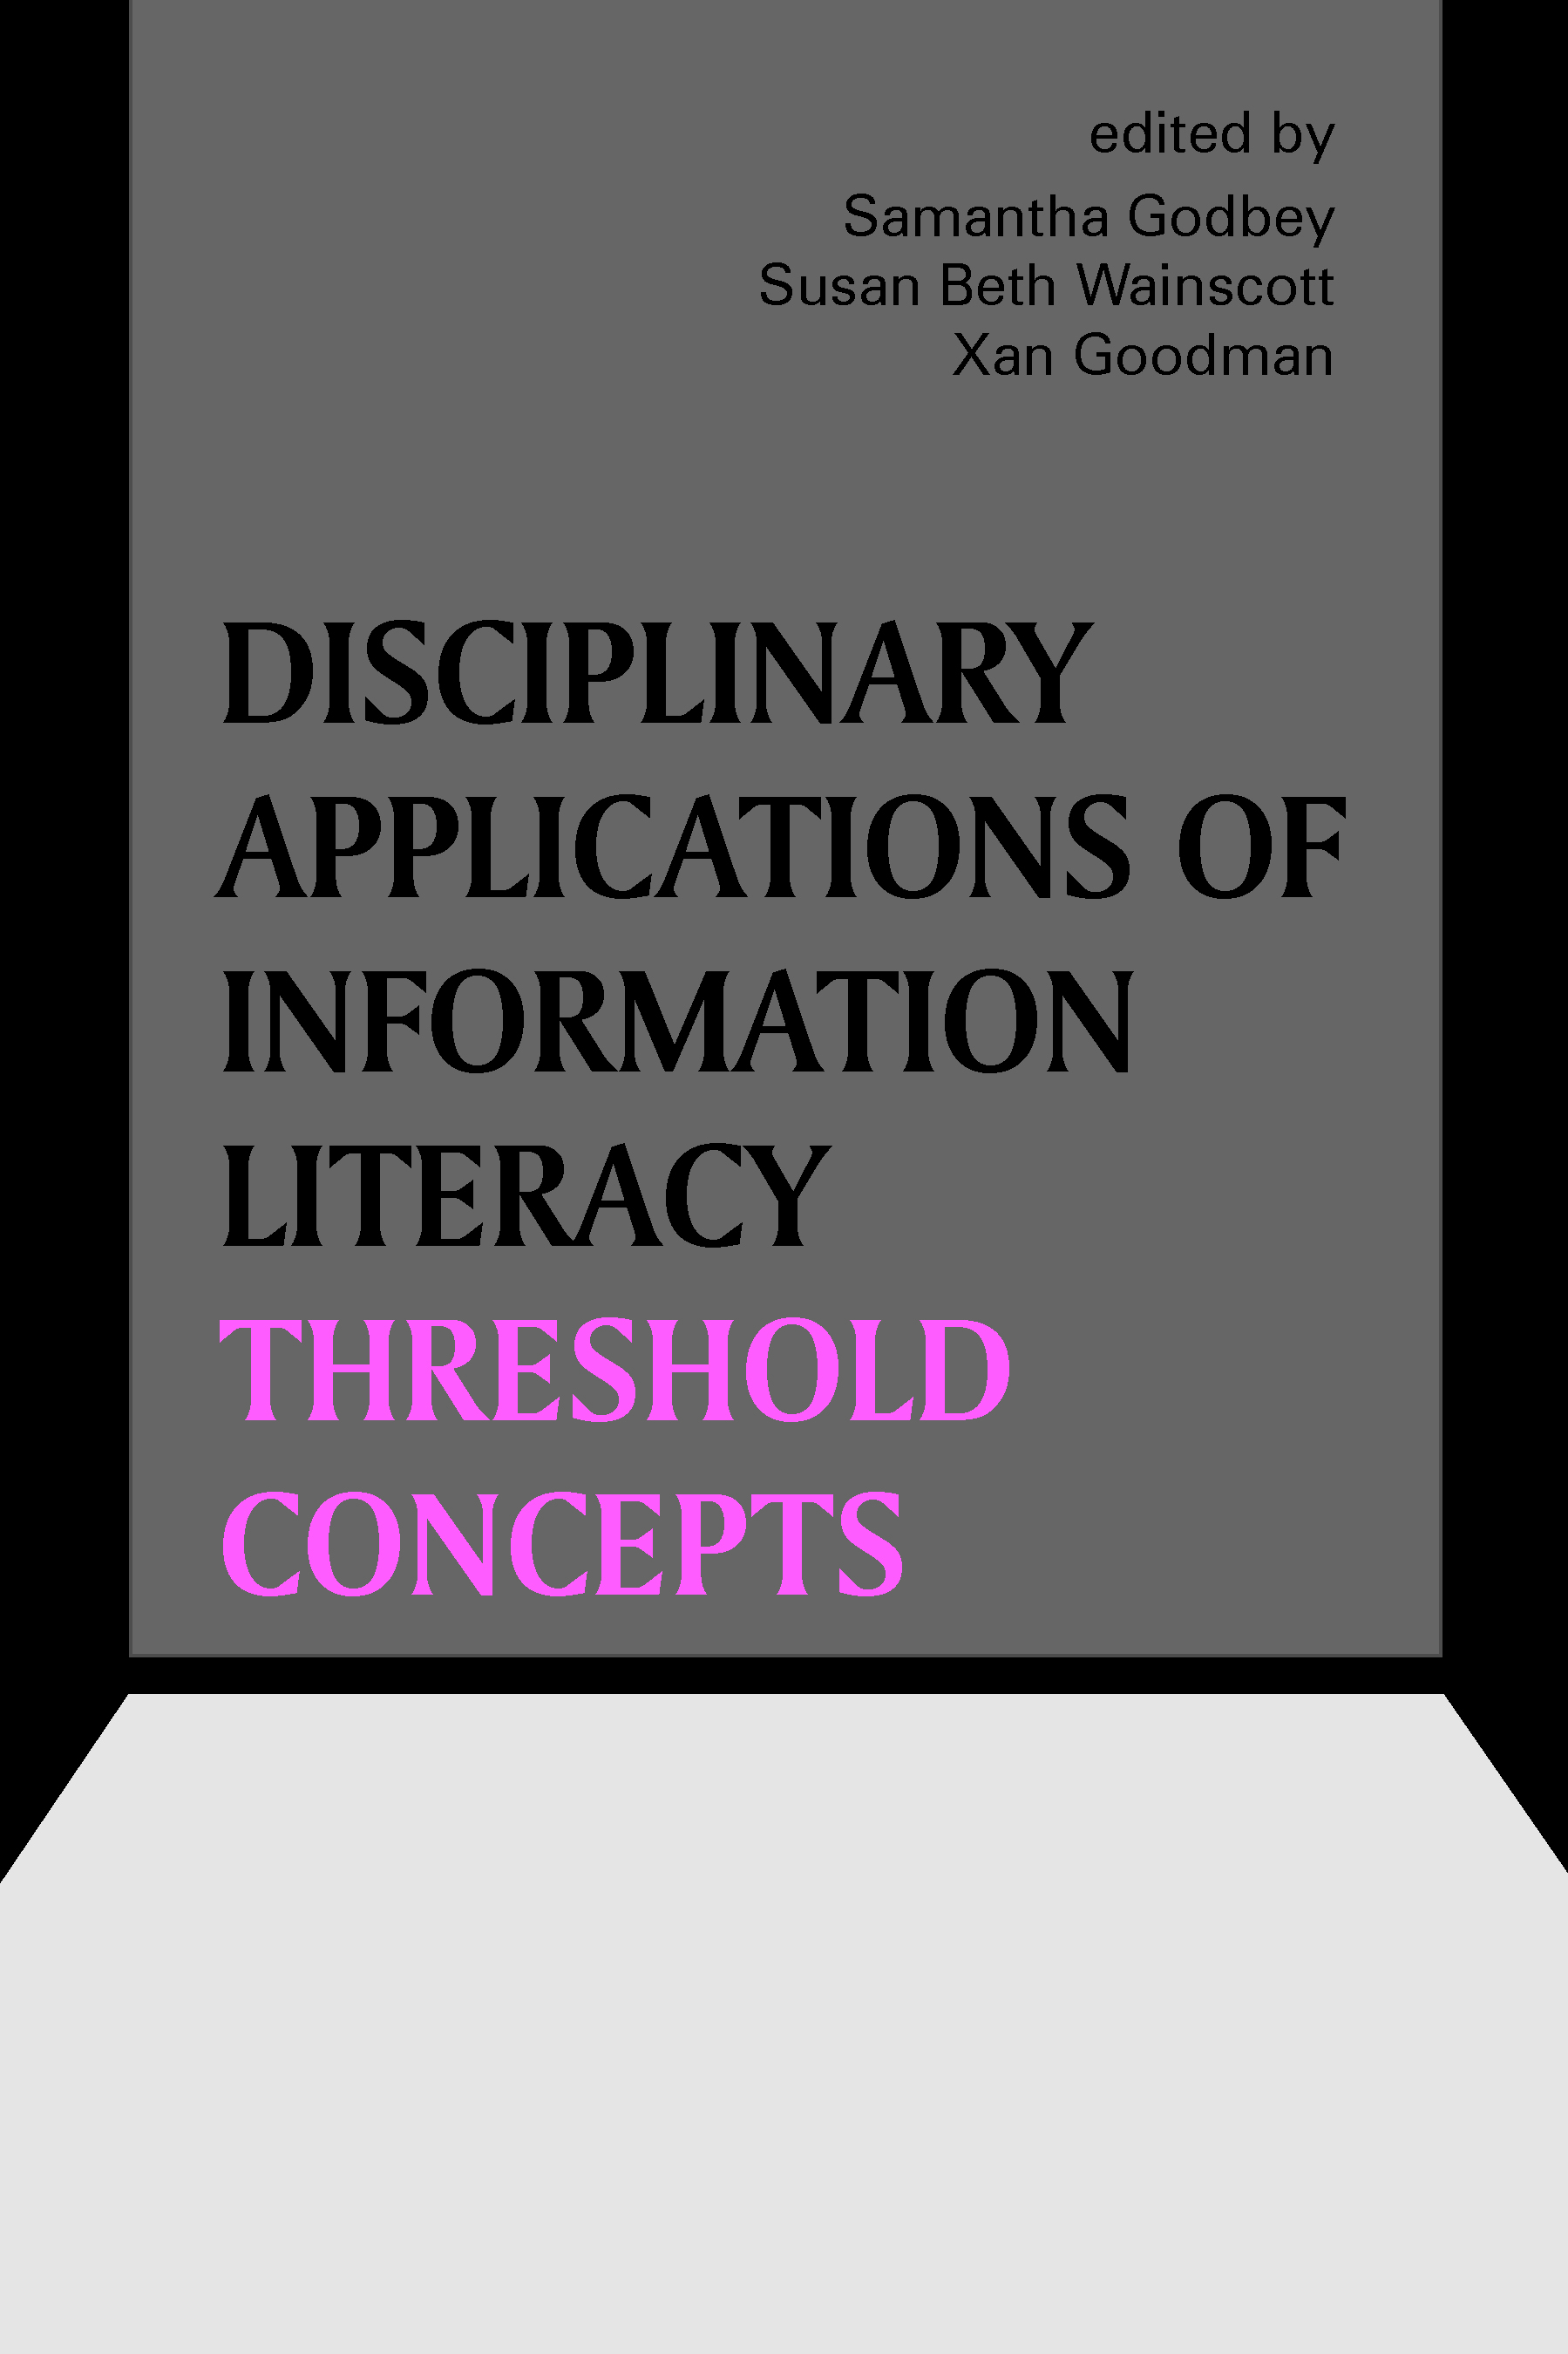 Disciplinary Applications of Information Literacy Threshold Concepts cover